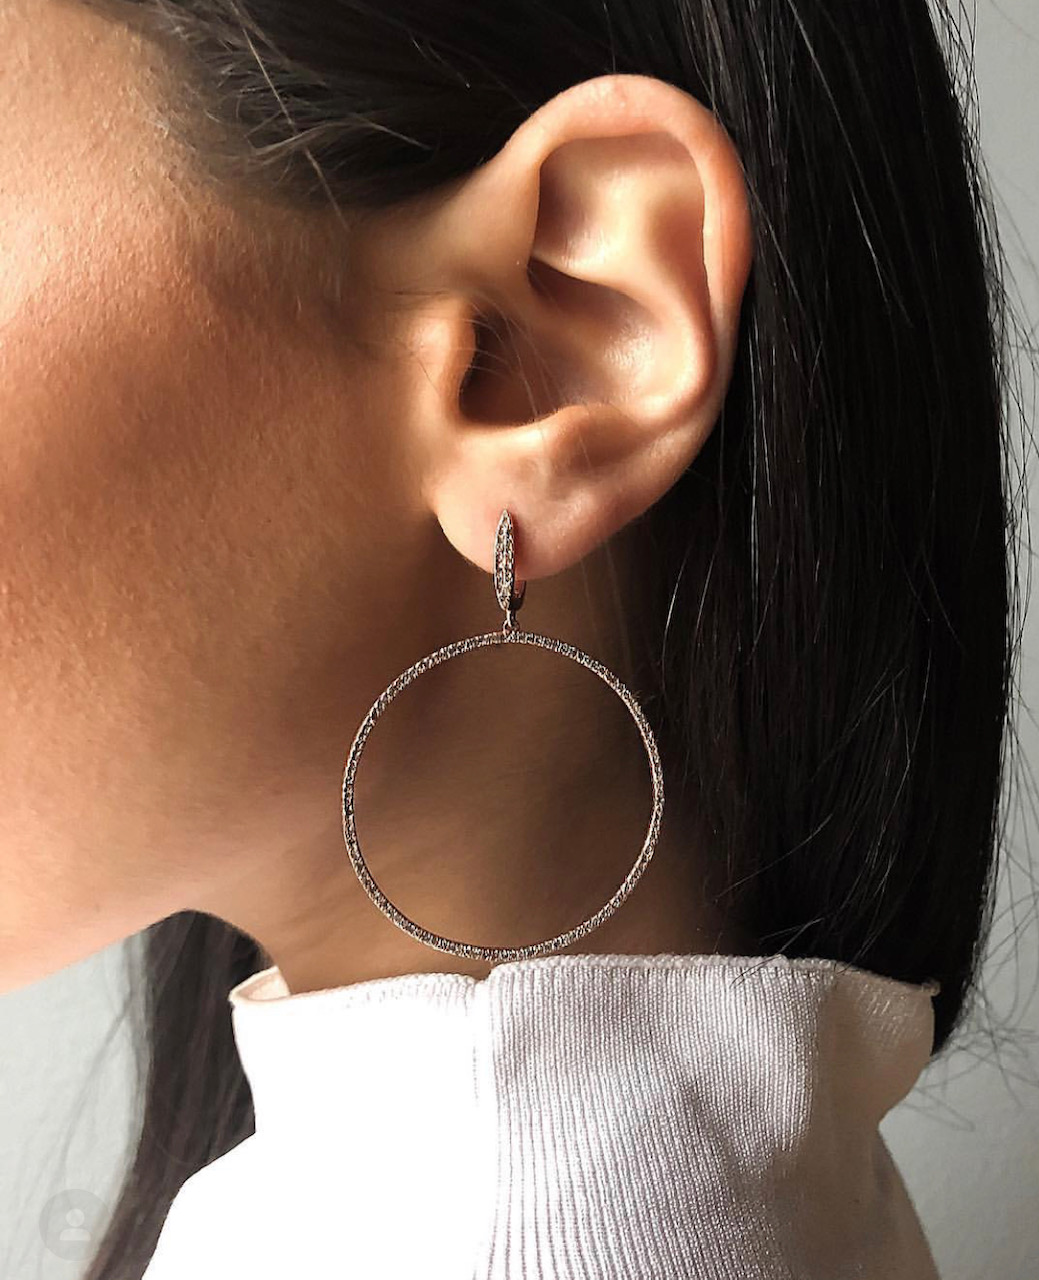 Be Loved Jewelry, Be Loved Chicago, Chicago jewelry designer, chicago jewelry company, diamond earrings, diamond hoop earrings